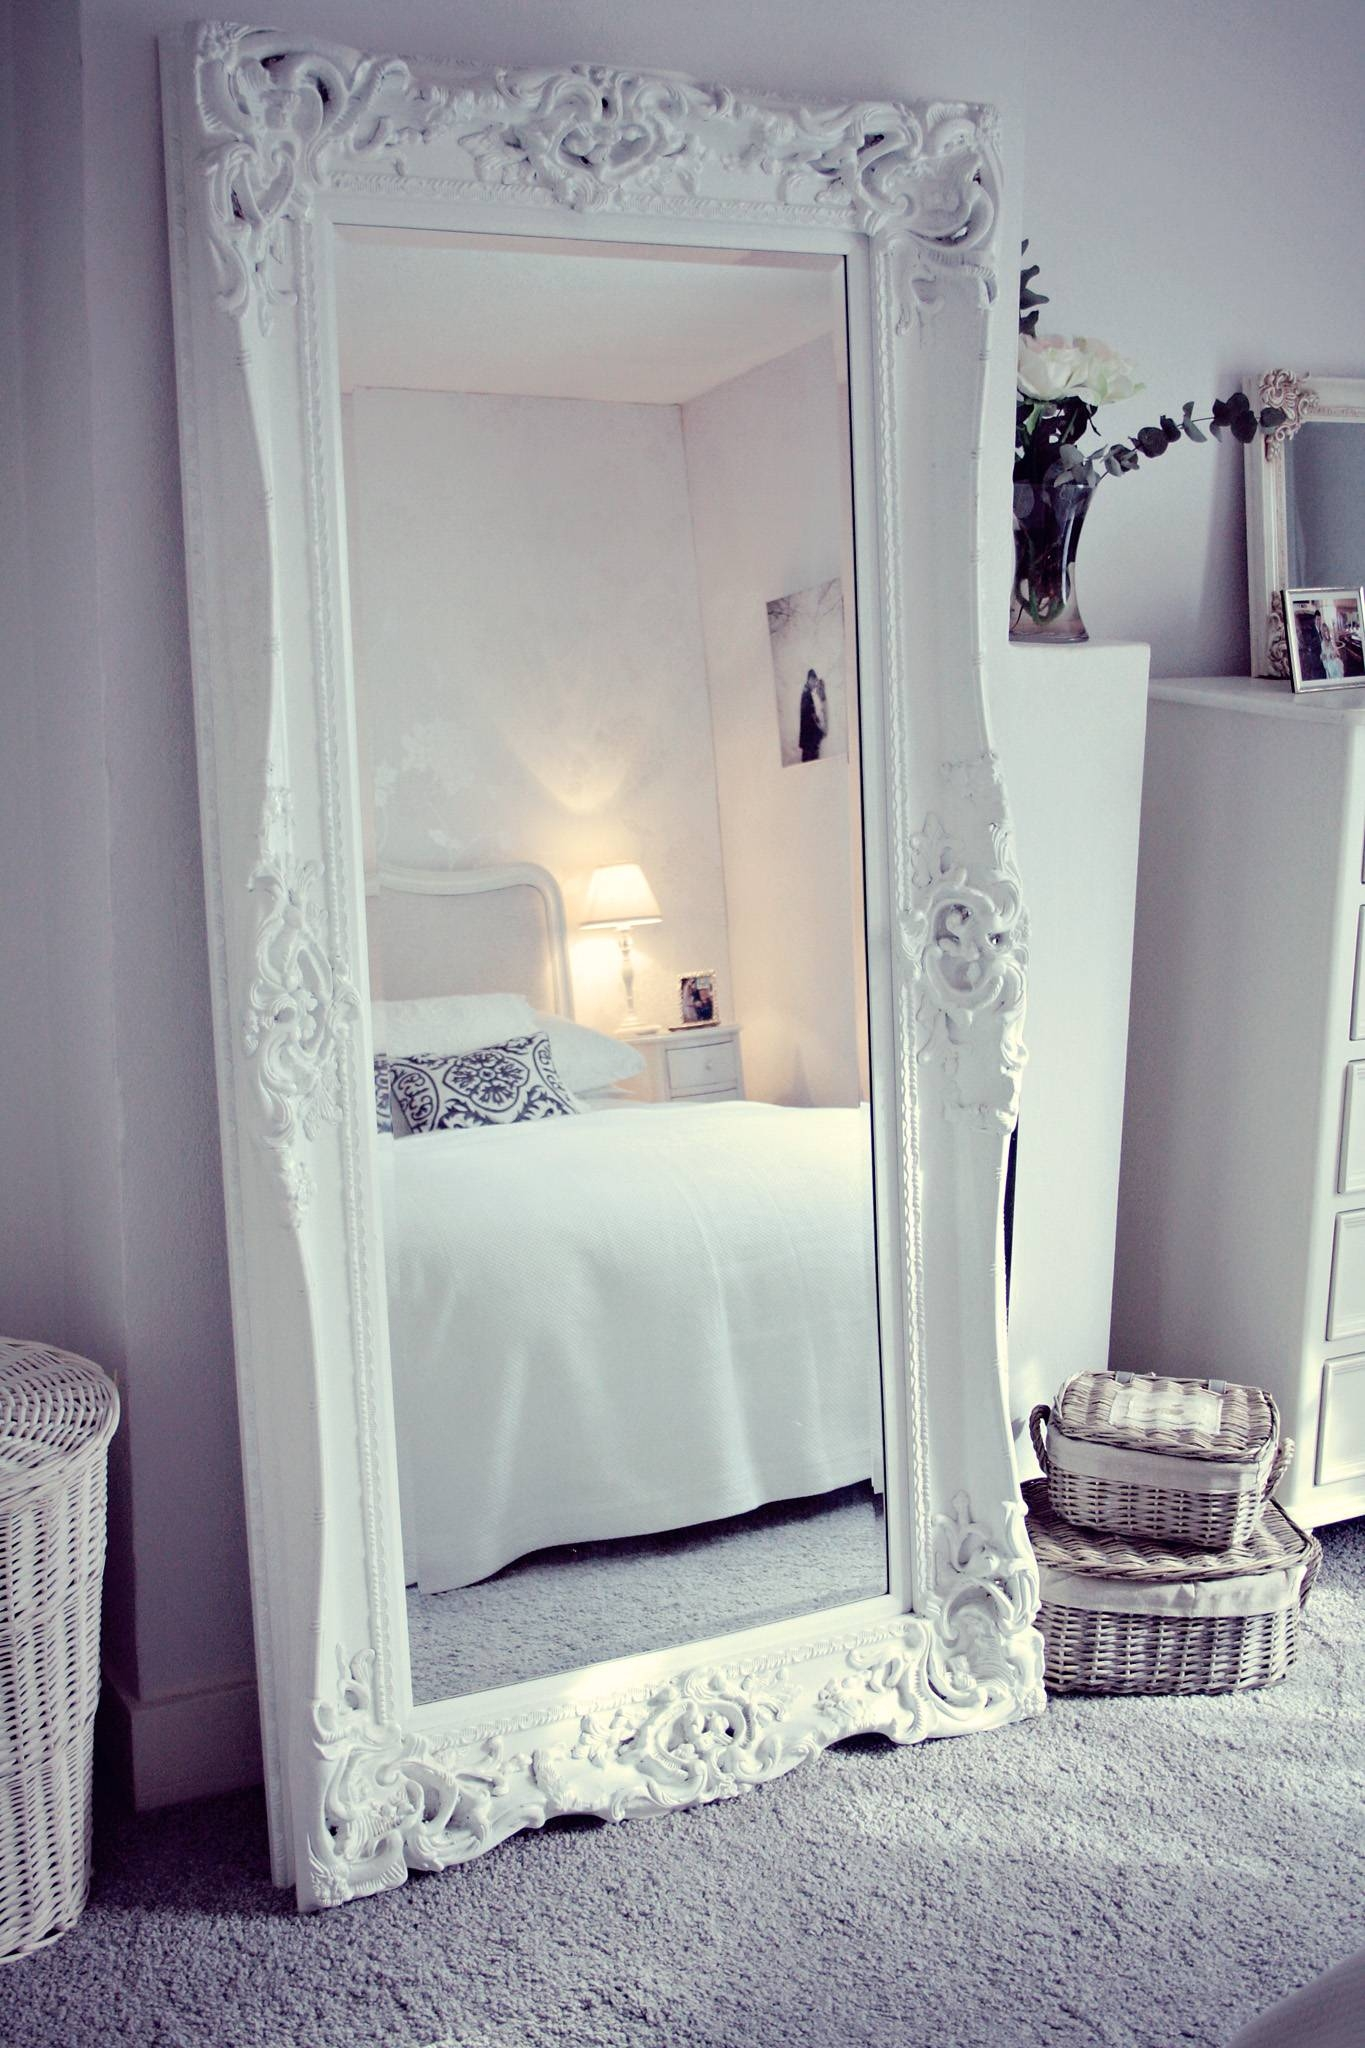 28+ [ Bedroom Mirror ] | Decorative Bedroom Mirrors In 21 Example with Large Mirrors (Image 2 of 25)